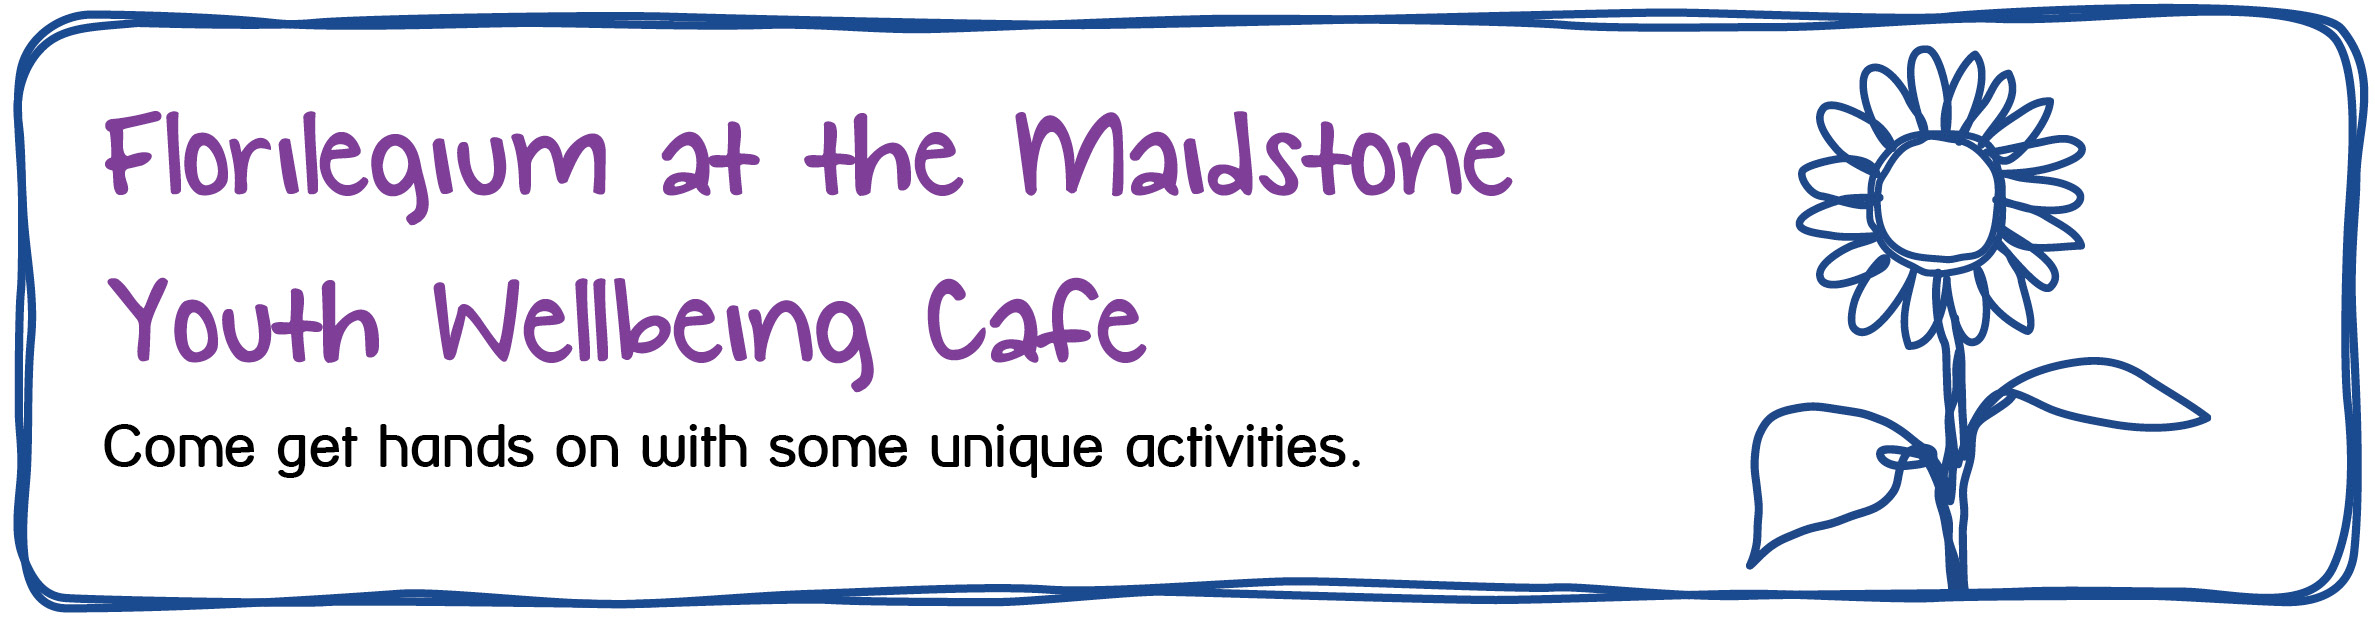 Florilegium Project at the Maidstone Youth Wellbeing Cafe - Come get hands on with some unique activities